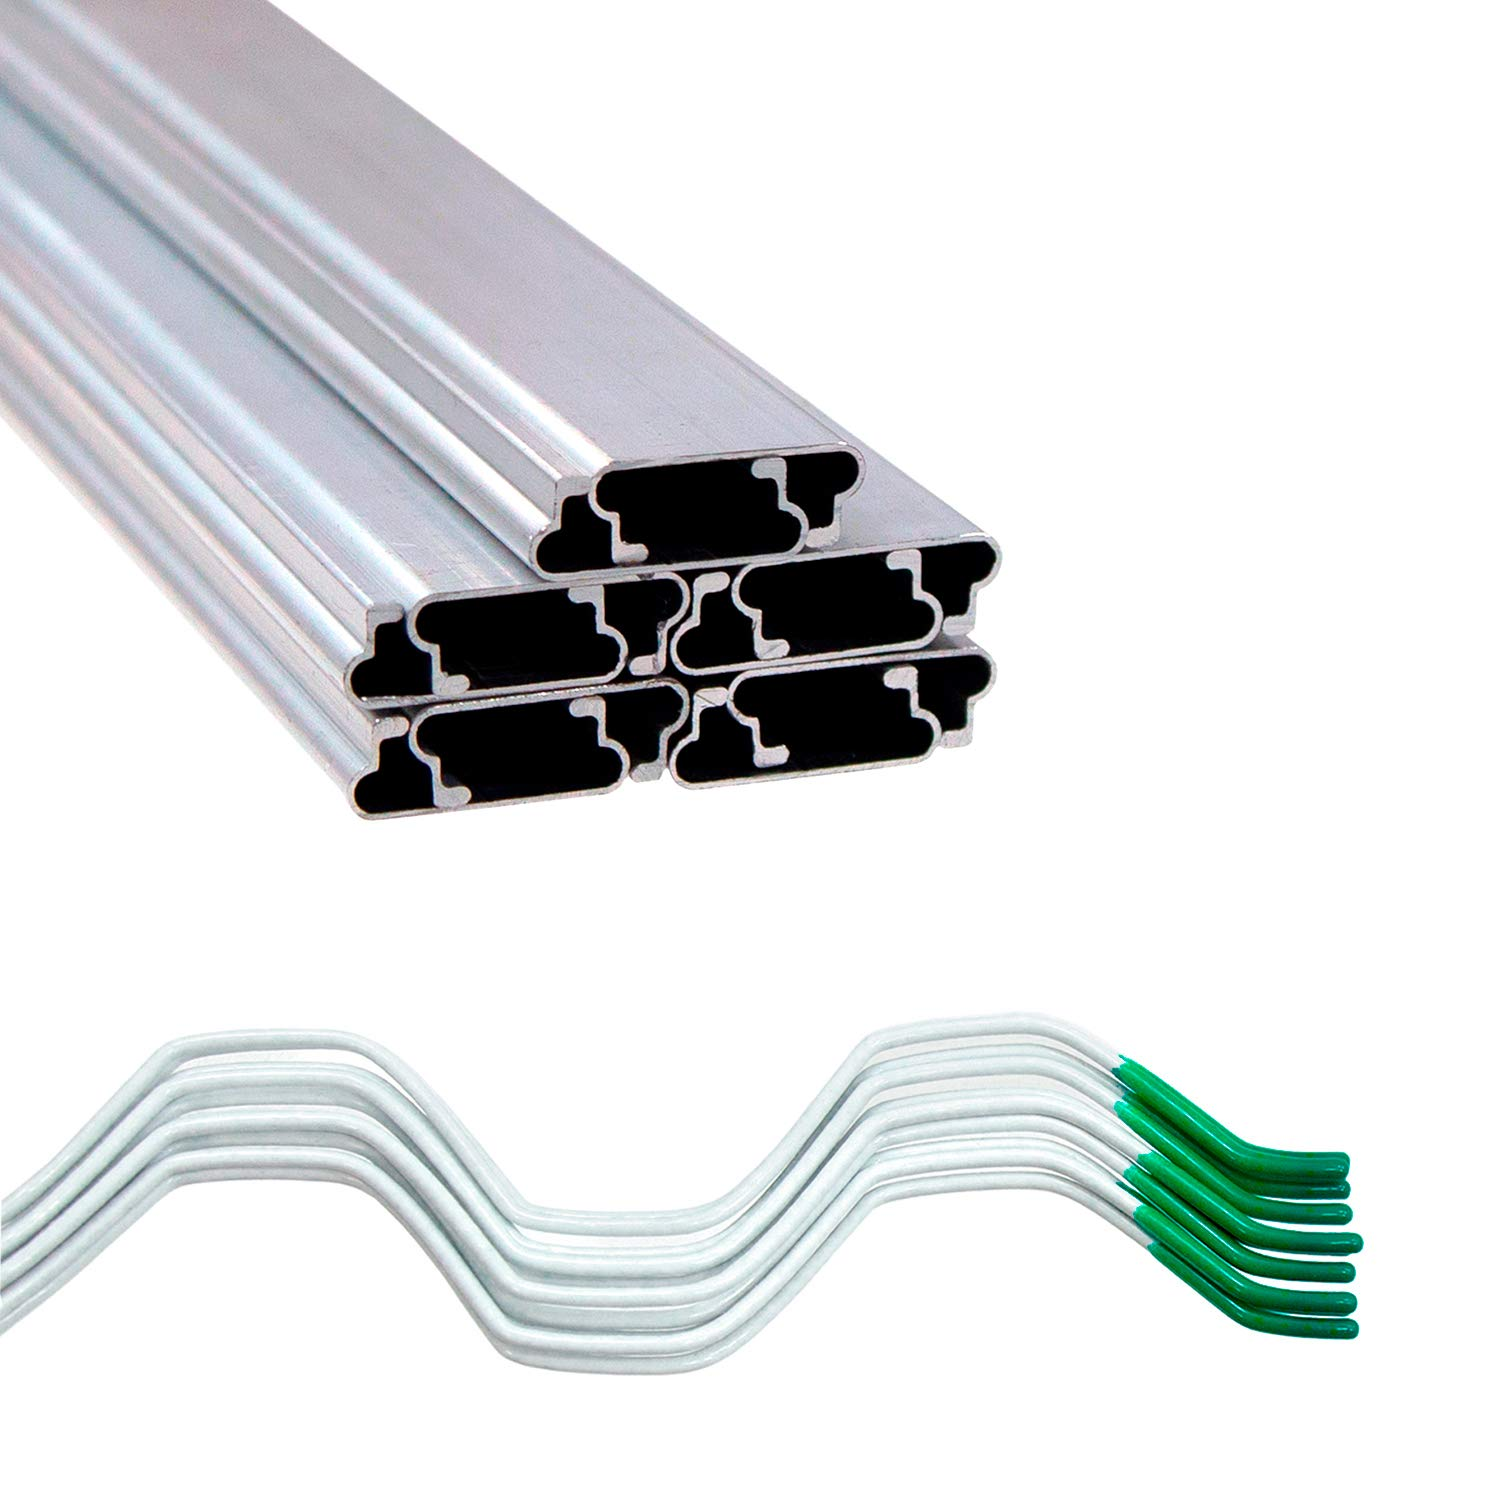 Jiggly Greenhouse Wire Kit 1'' x 6.5' Aluminum Channel and 6.5' Steel Wire Jiggly Wire (10 Pack)